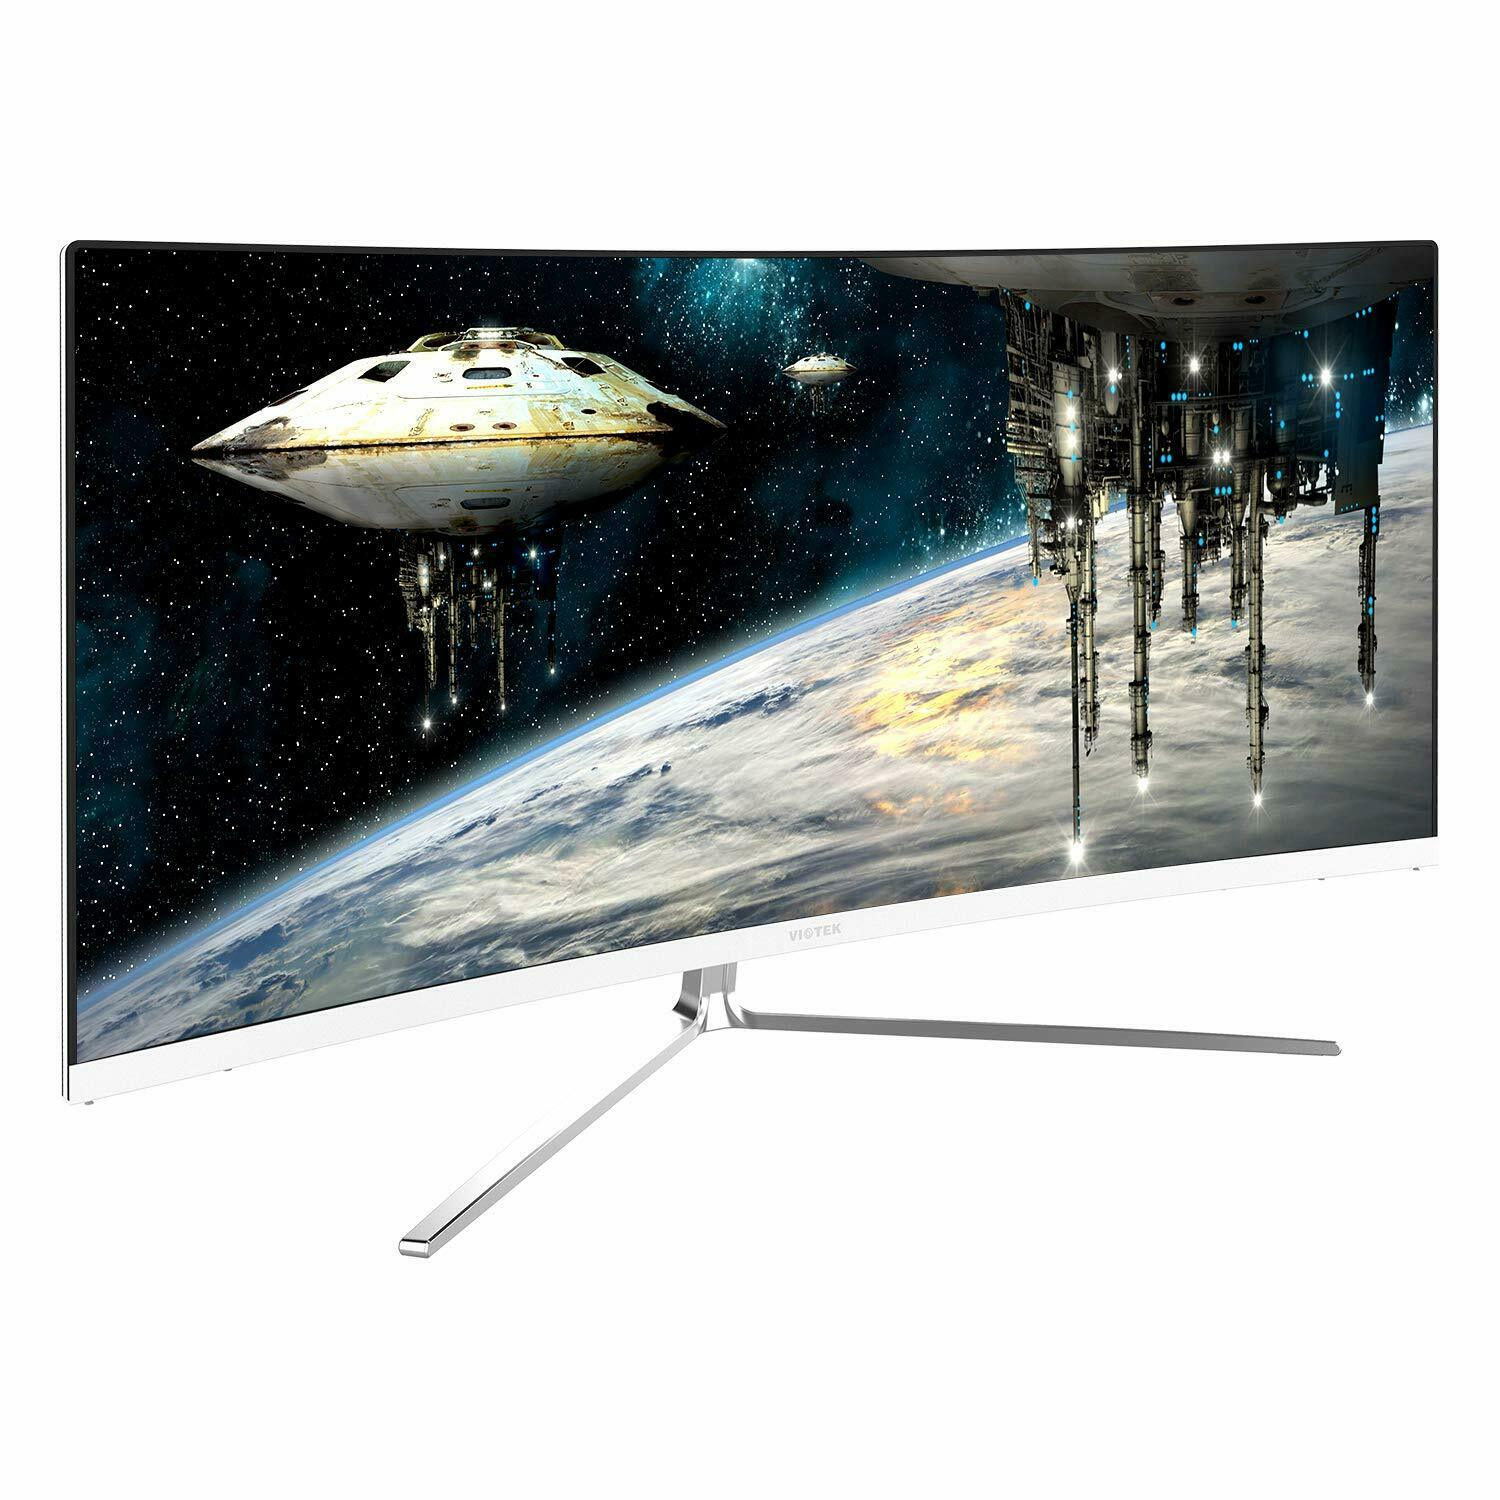 Viotek GN34CW 34-Inch 21:9 Ultrawide Curved QHD Gaming and P